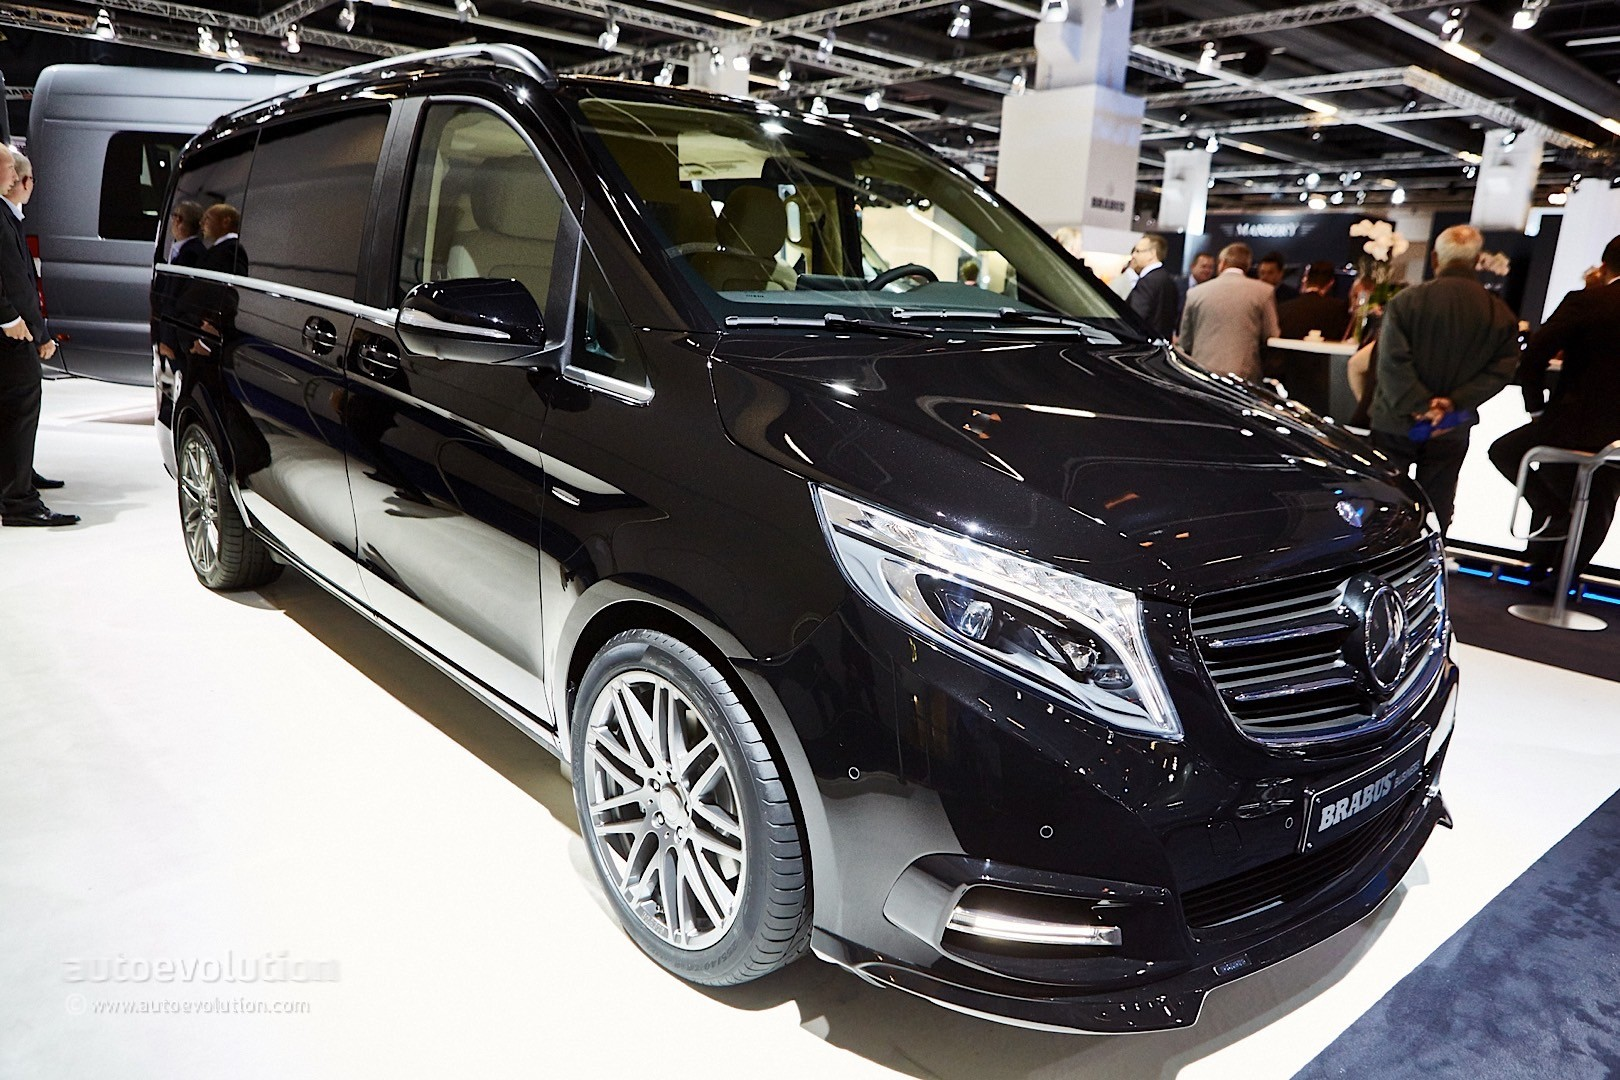 ' ' from the web at 'http://s1.cdn.autoevolution.com/images/news/gallery/brabus-sprinter-and-v-class-fill-the-luxury-van-gap-in-frankfurt-live-photos_23.jpg'